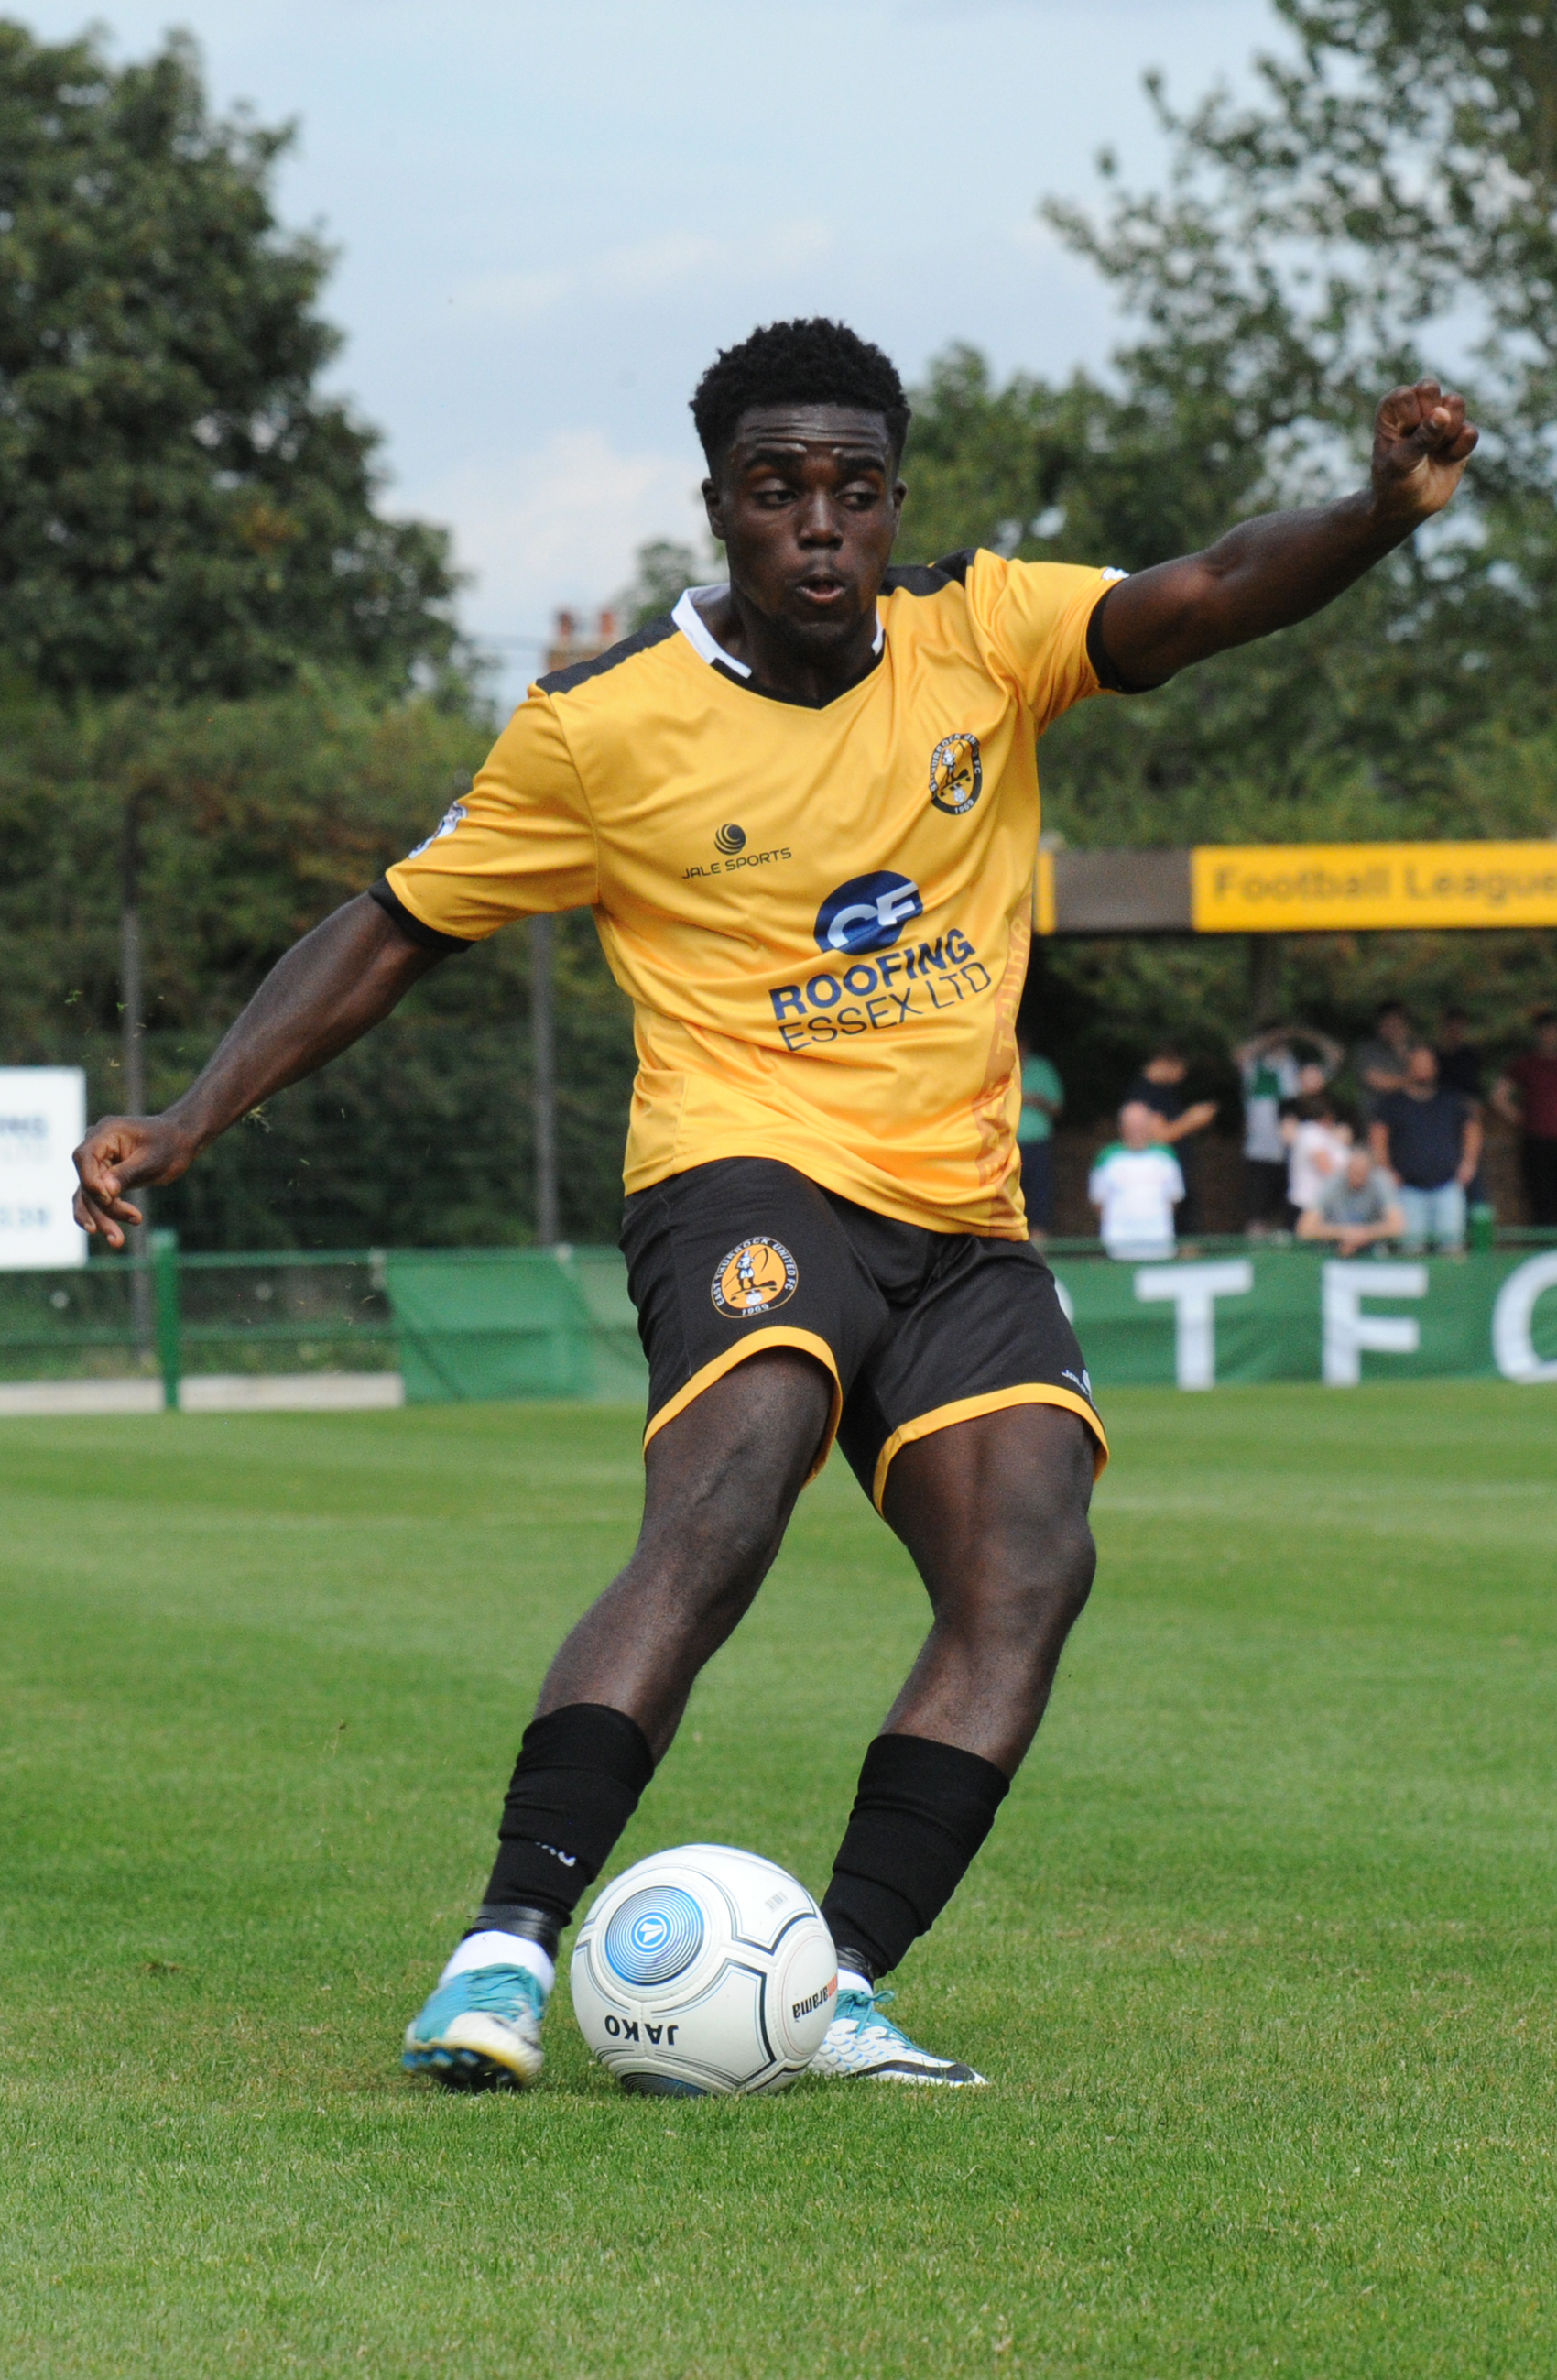 Winner - Montel Agyemang scored the winner for East Thurrock in the quarter-final